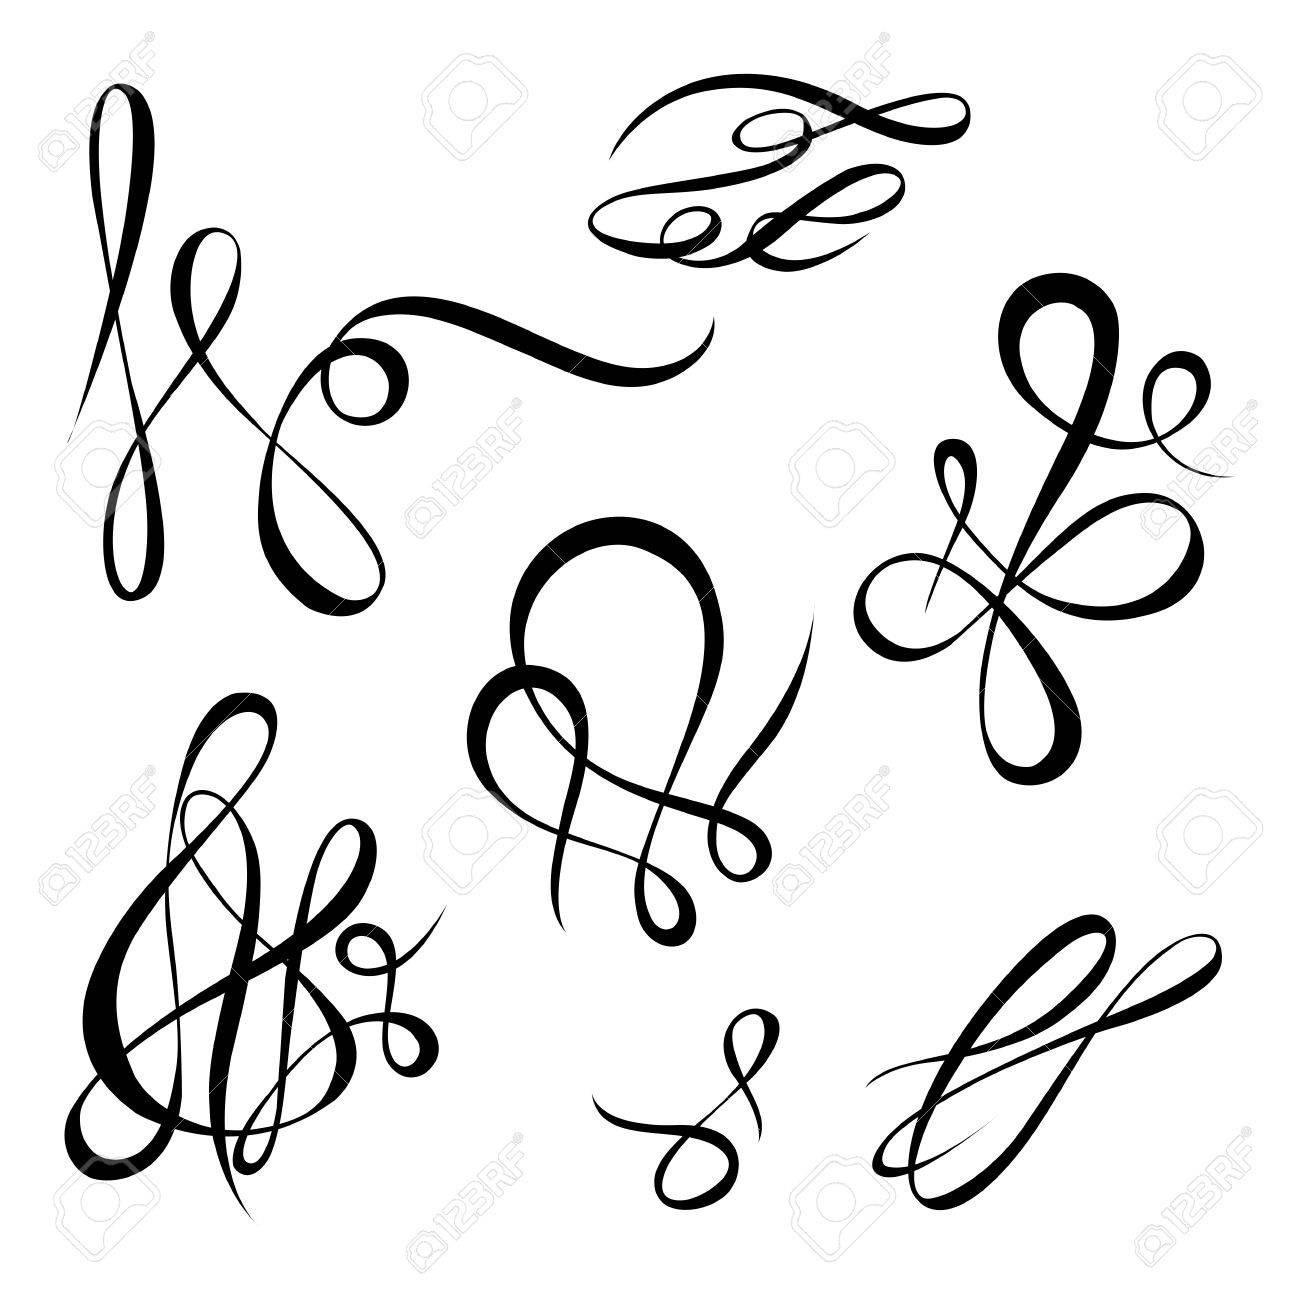 vector calligraphy page decoration calligraphic swirls and twirls rh 123rf com swirl vectors png swirl vector free download